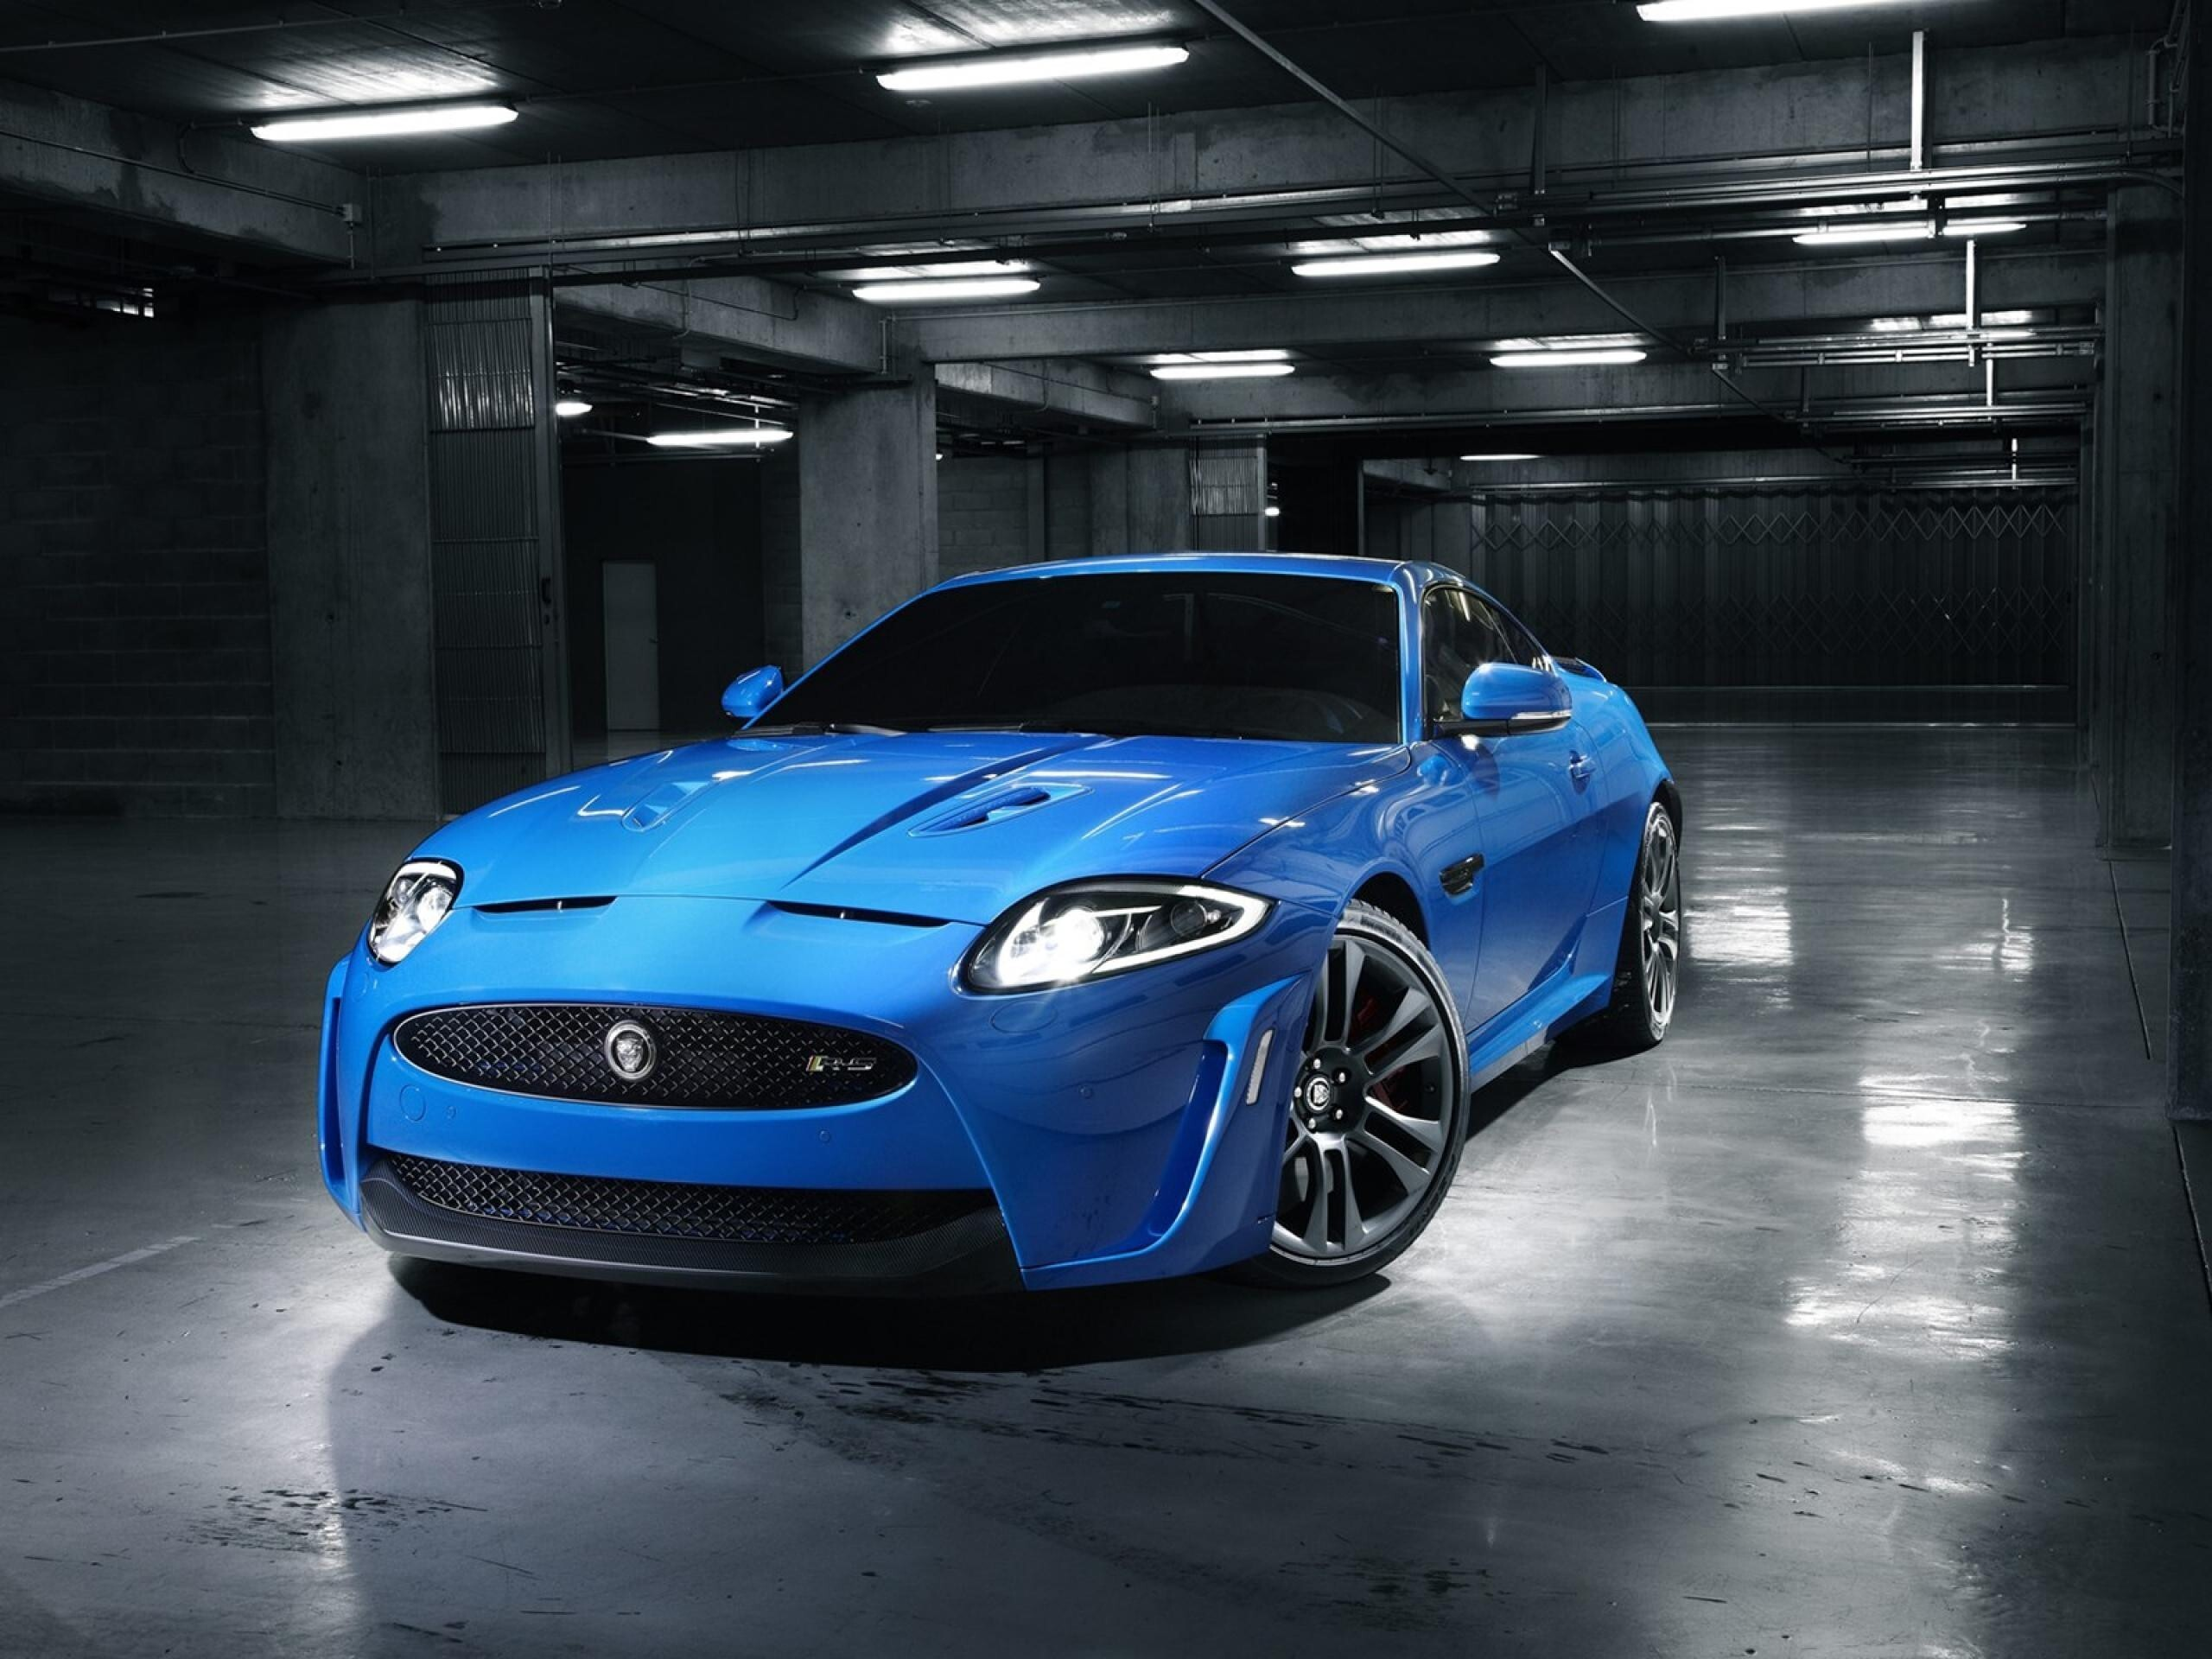 Jaguar cars blue - photo#22